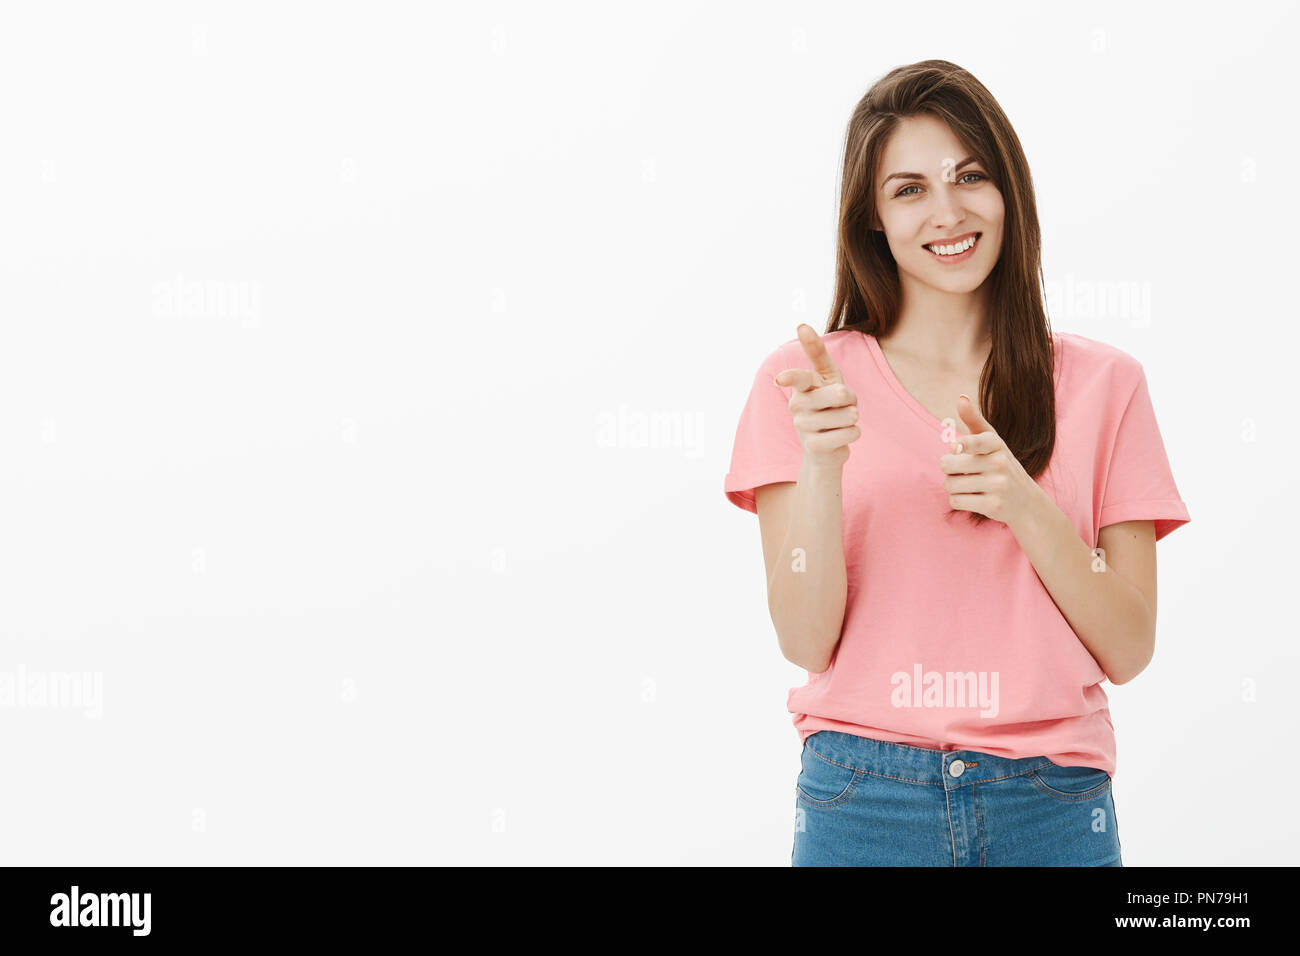 d3b4dd87f Girl making finger gun gesture to greet friend. Positive relaxed attractive  woman in pink t